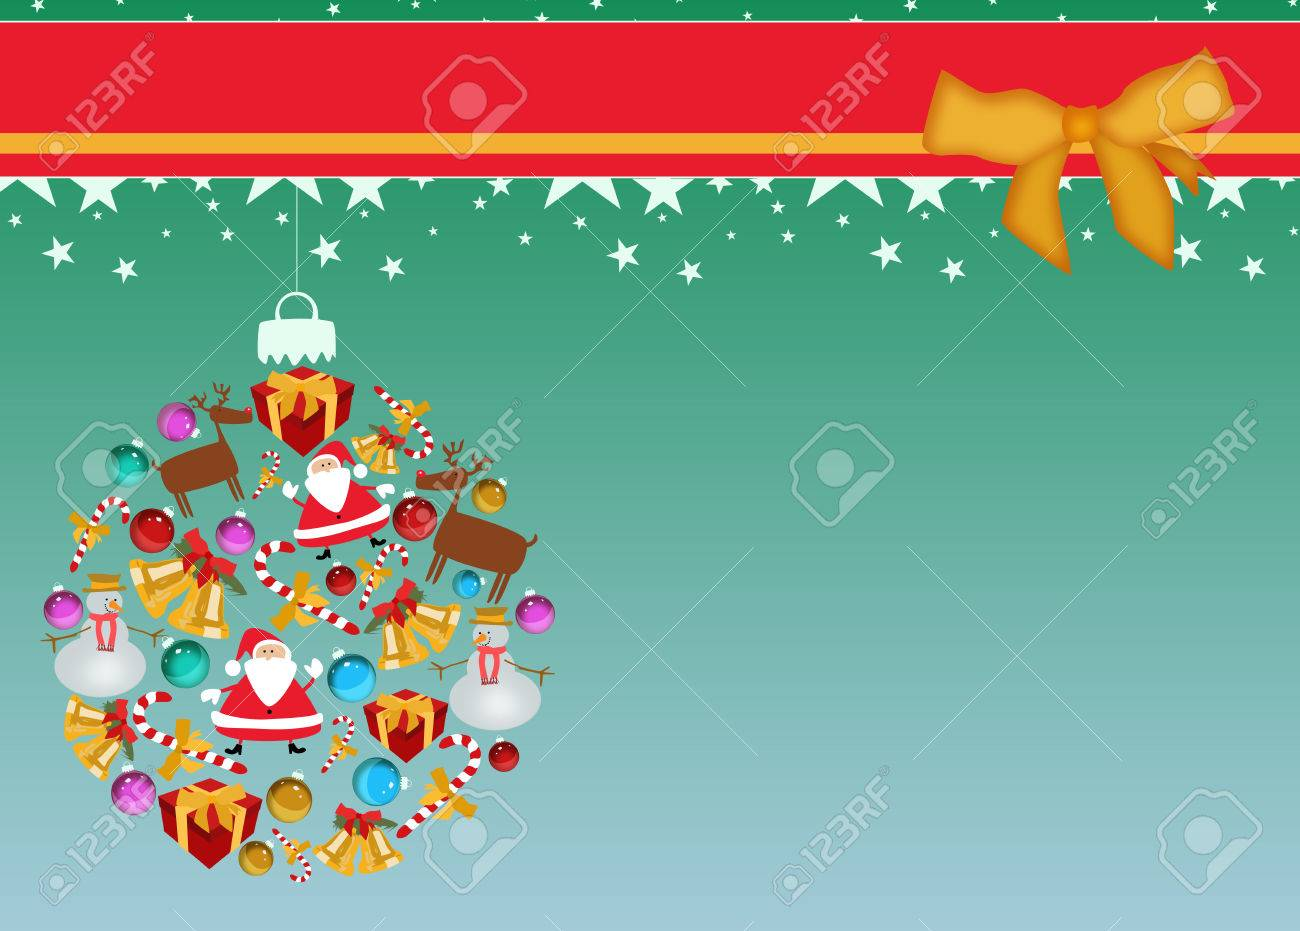 merry christmas decoration poster or flyer background space merry christmas decoration poster or flyer background space stock photo 23419470